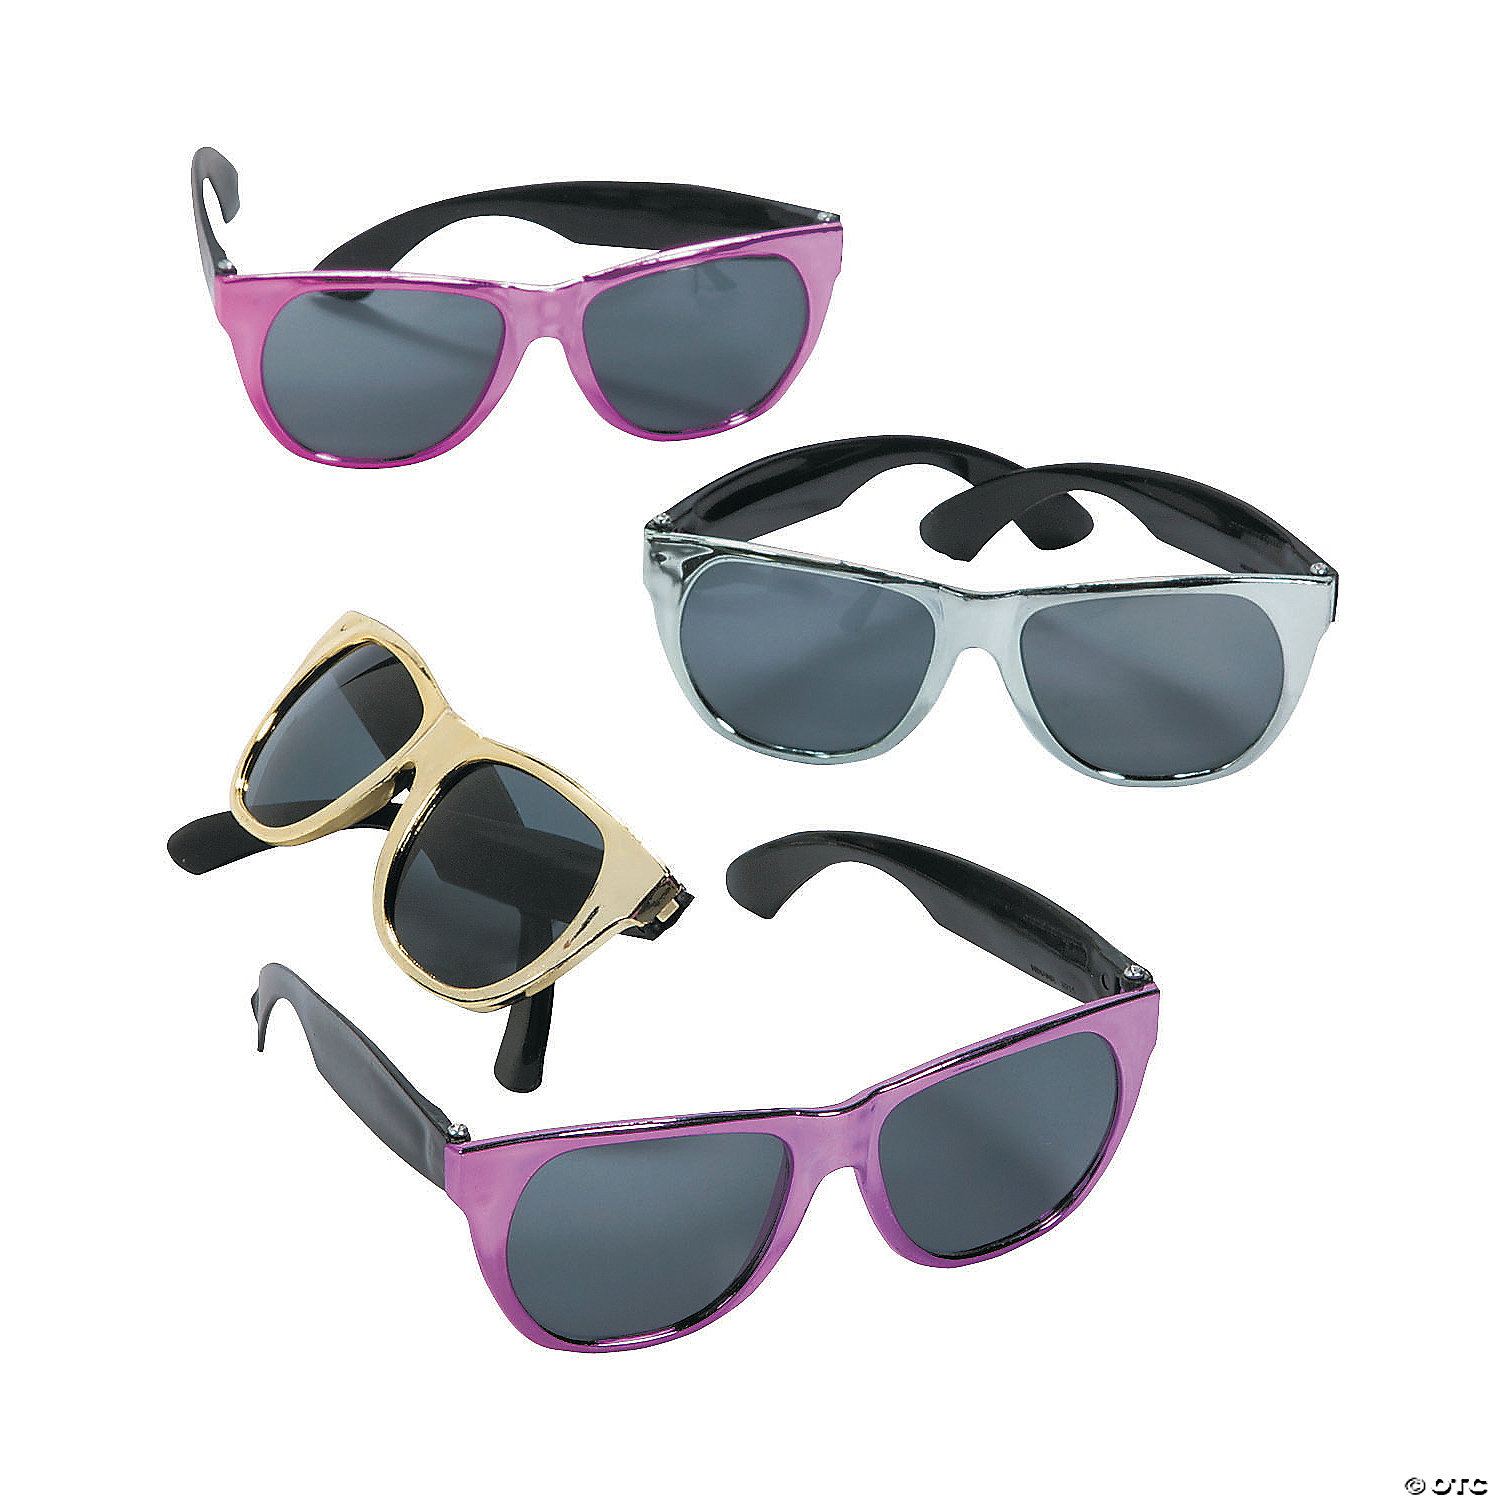 Novelty Sunglasses | OrientalTrading.com